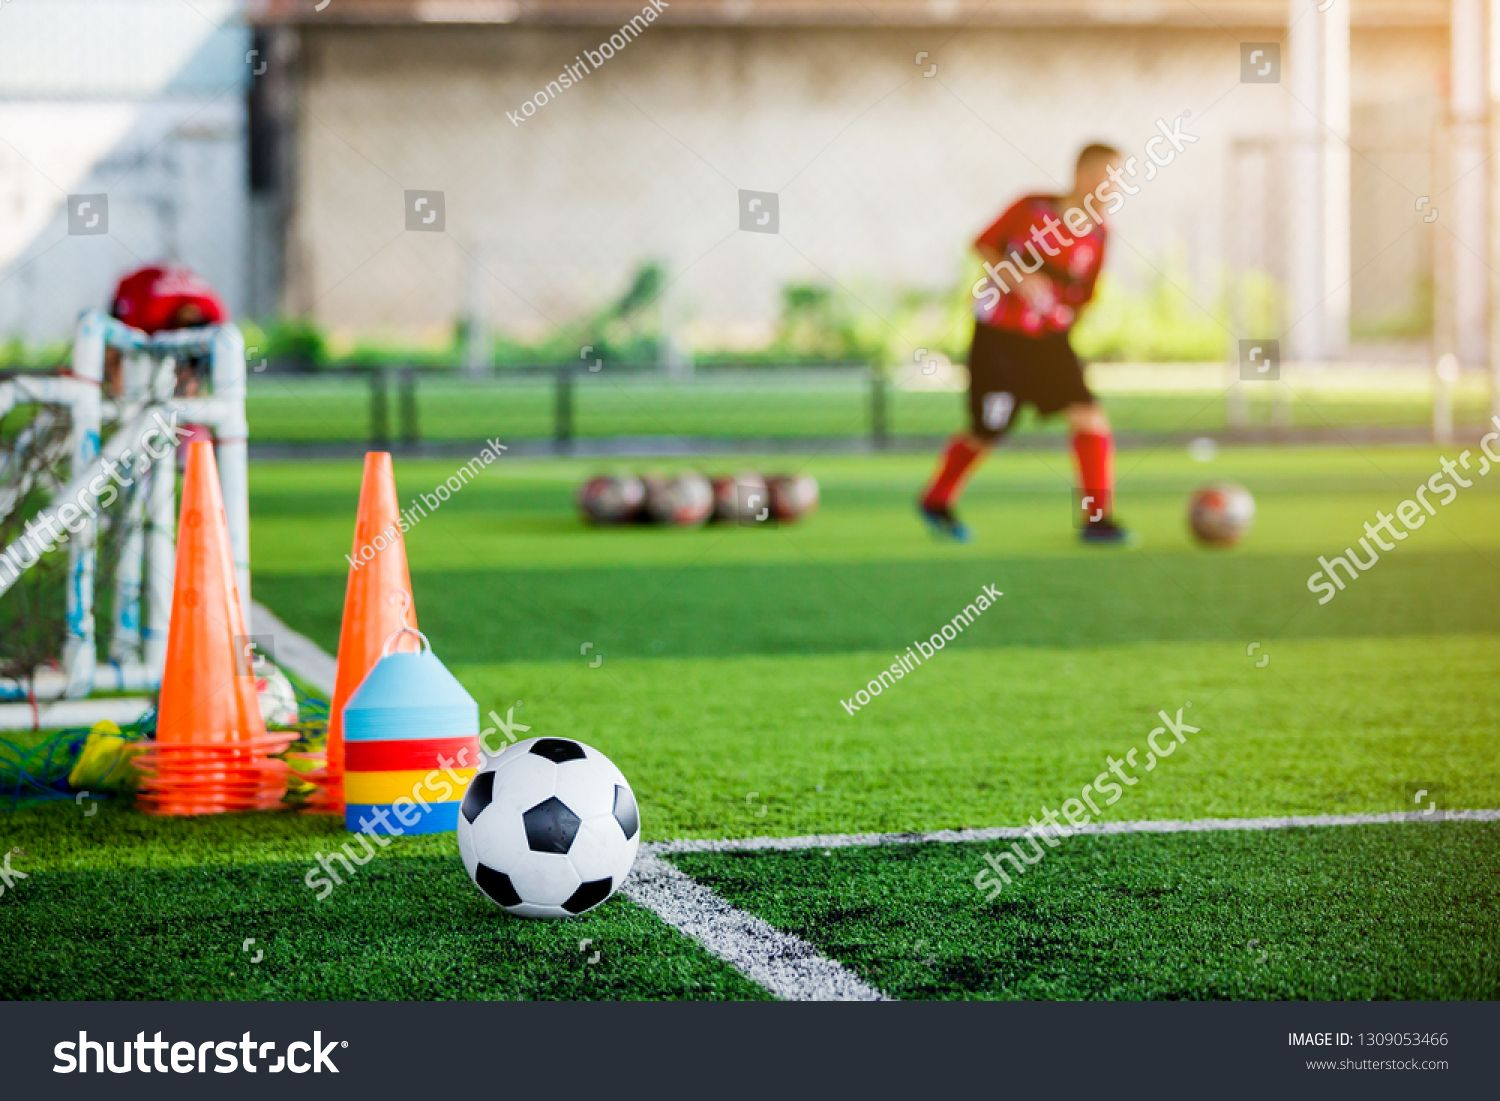 Football And Soccer Training Equipment On Green Artificial Turf With Blurry Of Soccer Players Training Soccer Training Equipment Soccer Training Soccer Academy